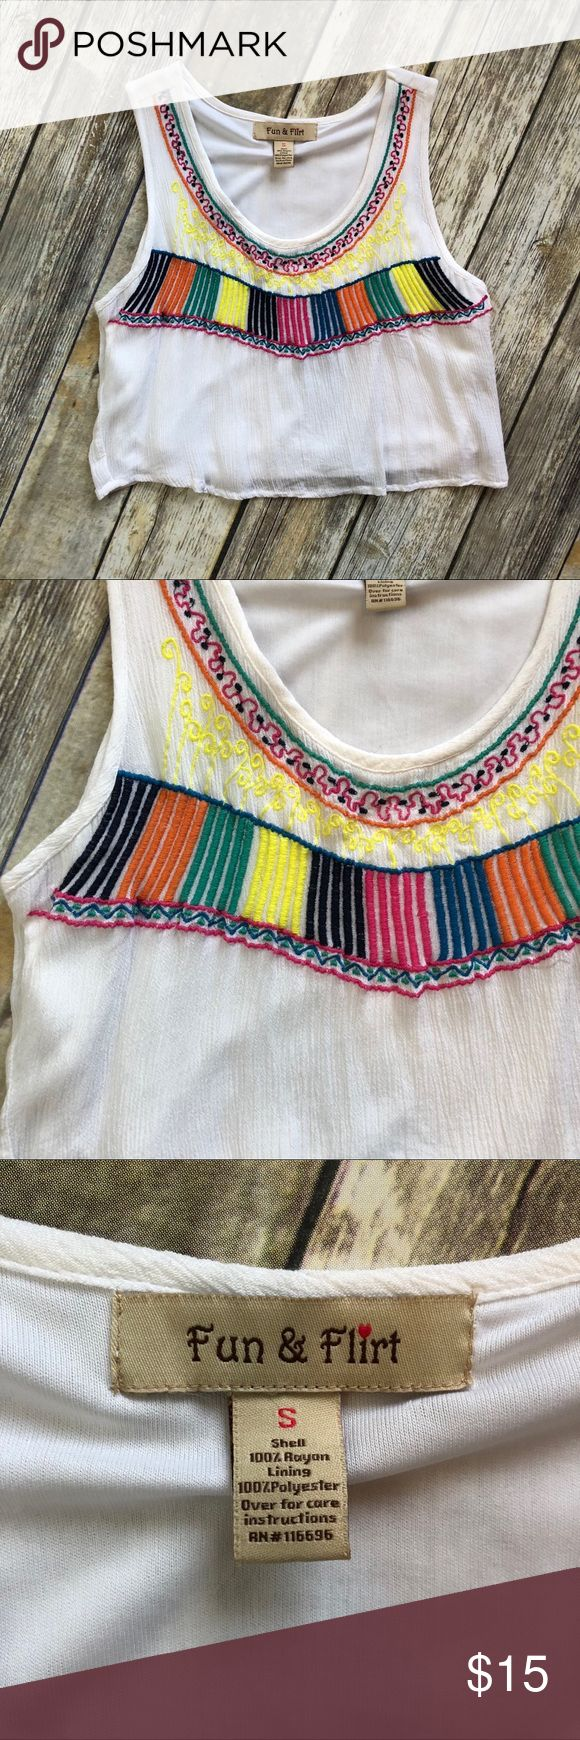 Embroidered Multi Color Crop Top Cute multi color embroidered crop top. Lined. Never worn - NWOT. Everything as pictured.   NOTE - this is from owner's closet. Not a NWT boutique item Tops Crop Tops